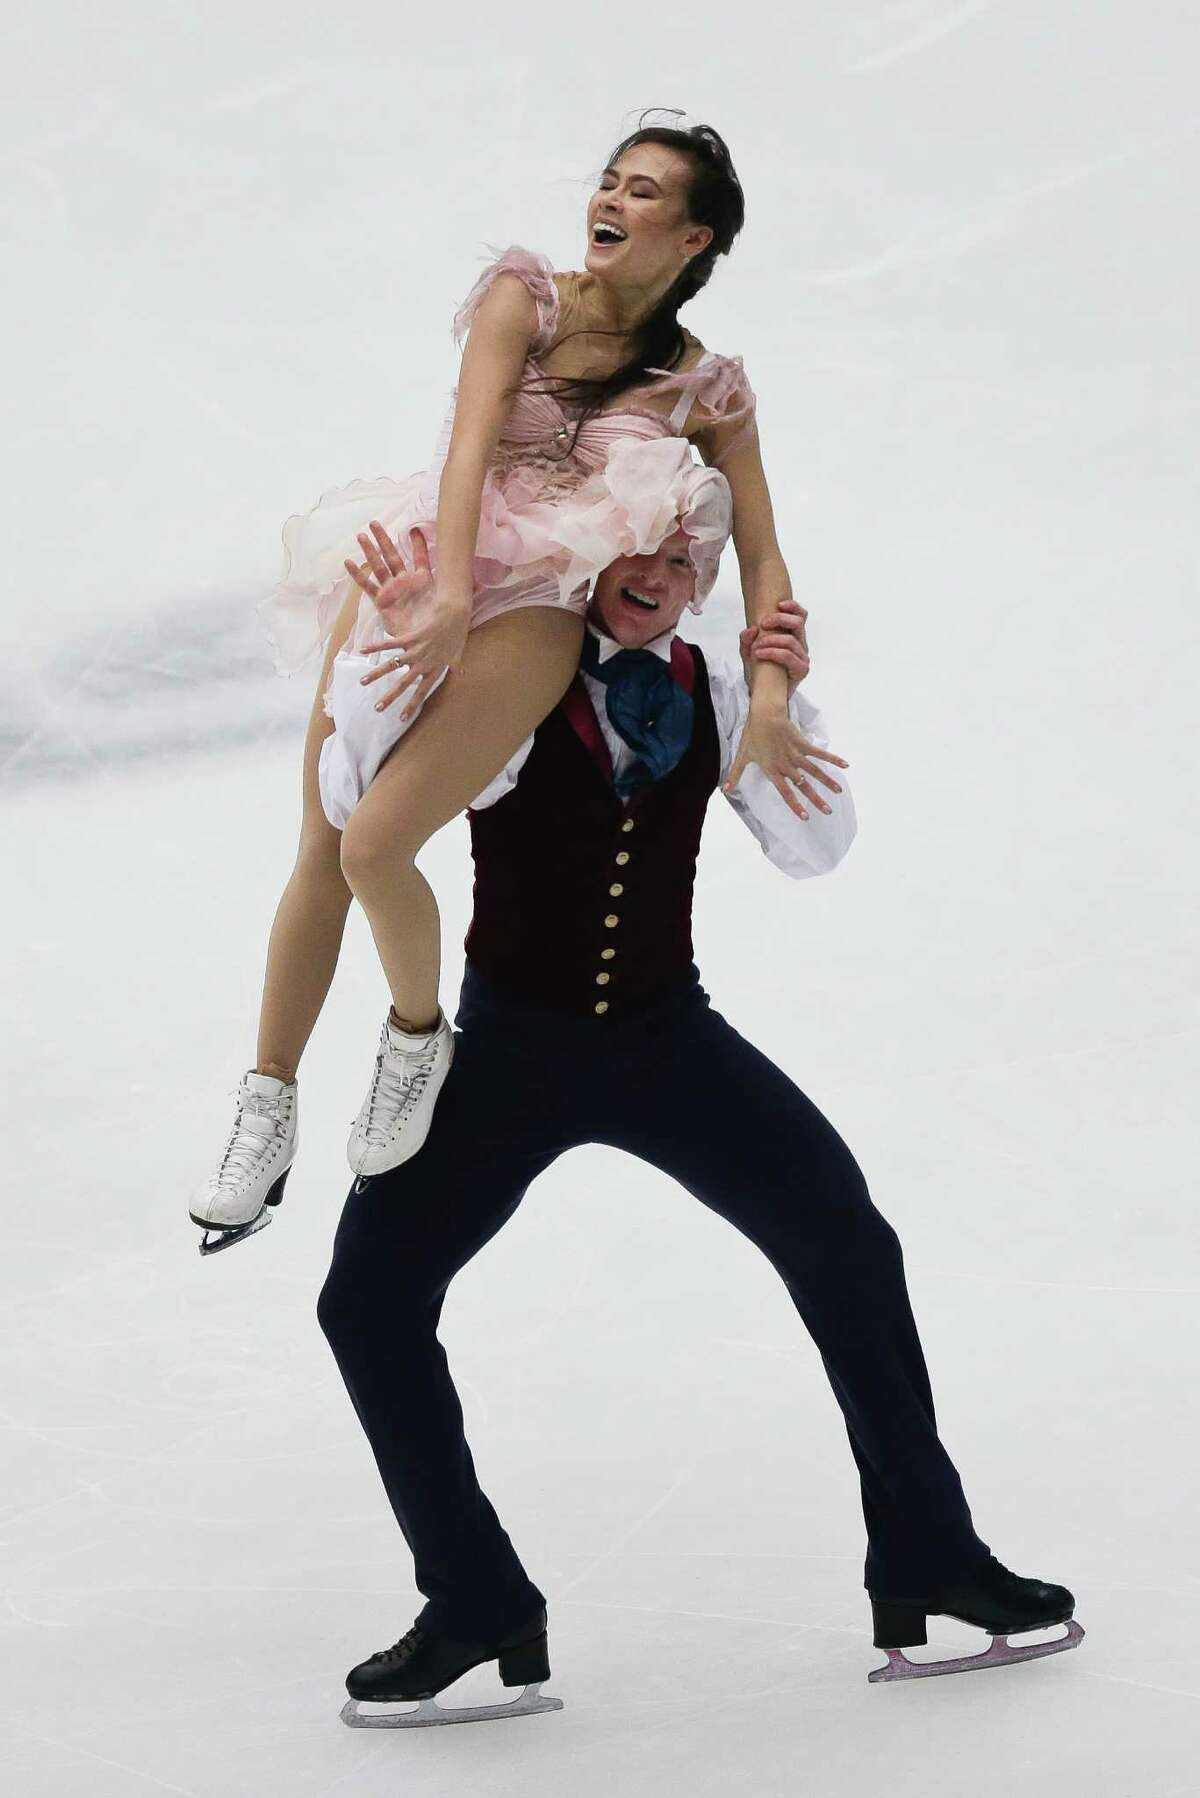 Madison Chock and Evan Bates, of United States, perform in the ice dance event at the Cup of China ISU 2013 Grand Prix of Figure Skating in Beijing, Saturday, Nov. 2, 2013.